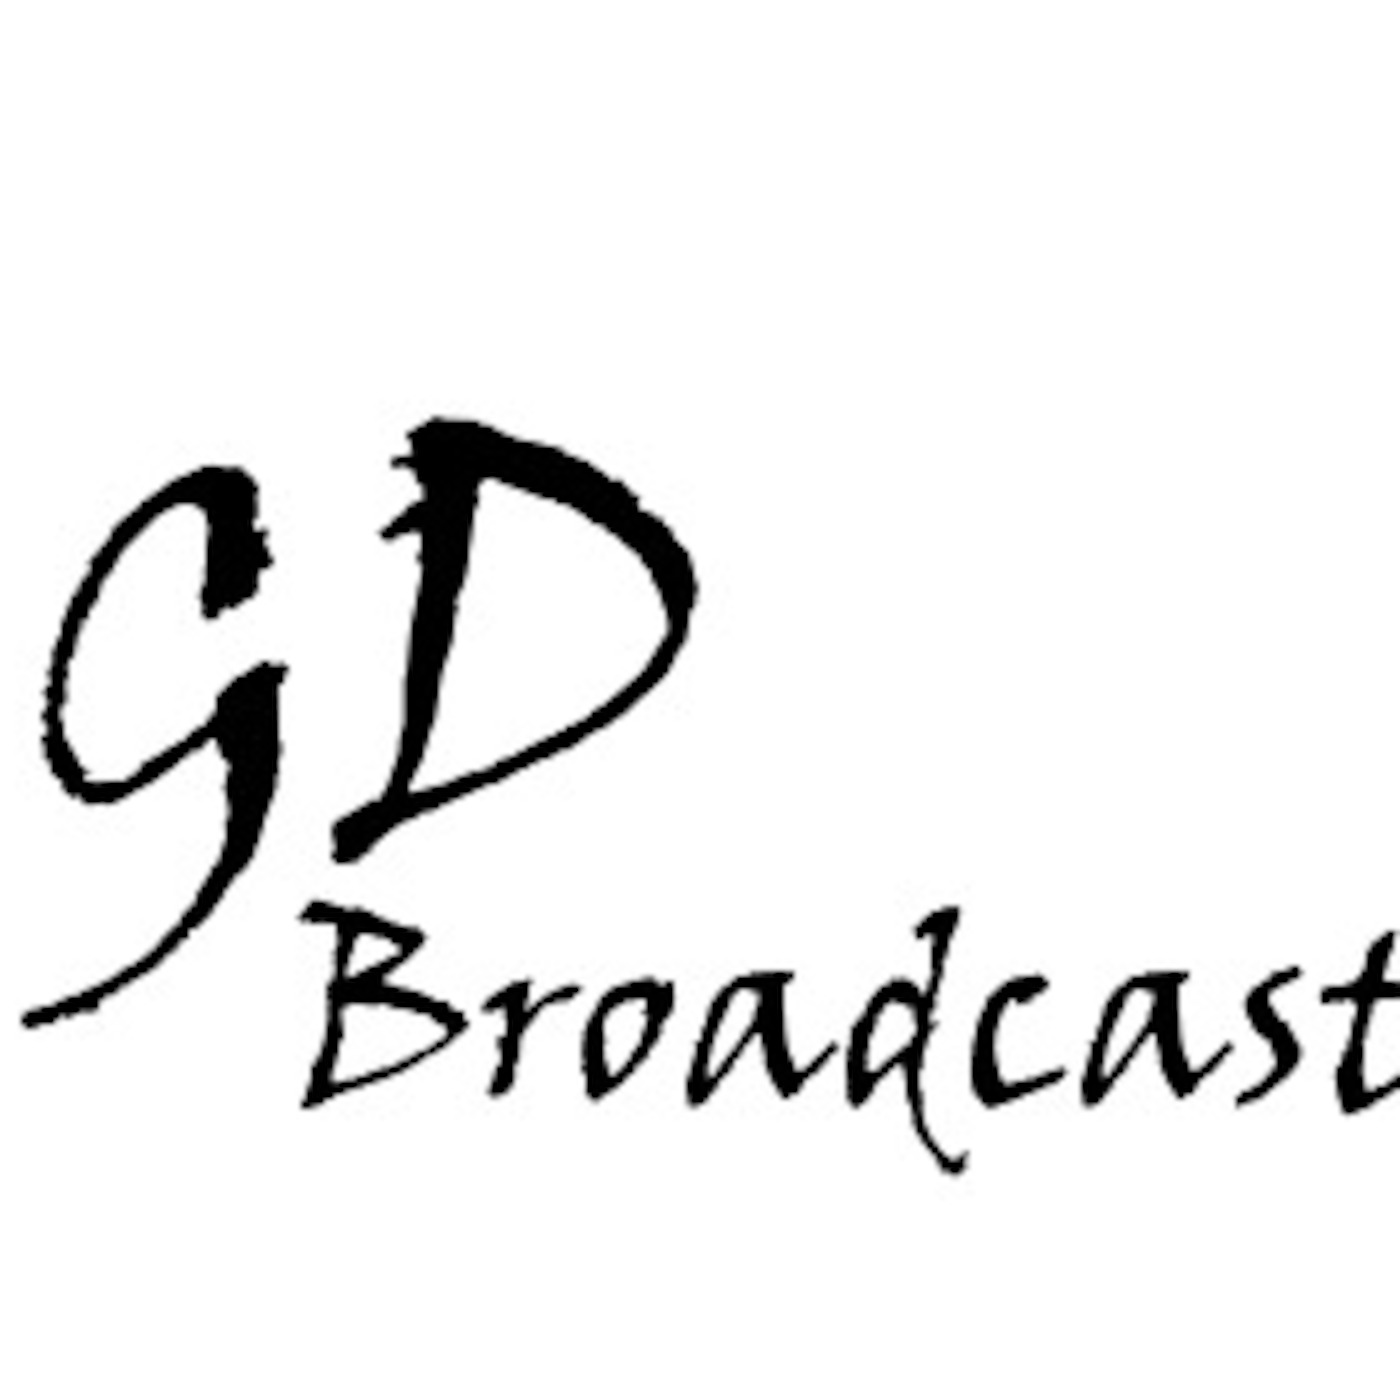 GD Broadcast's Podcast